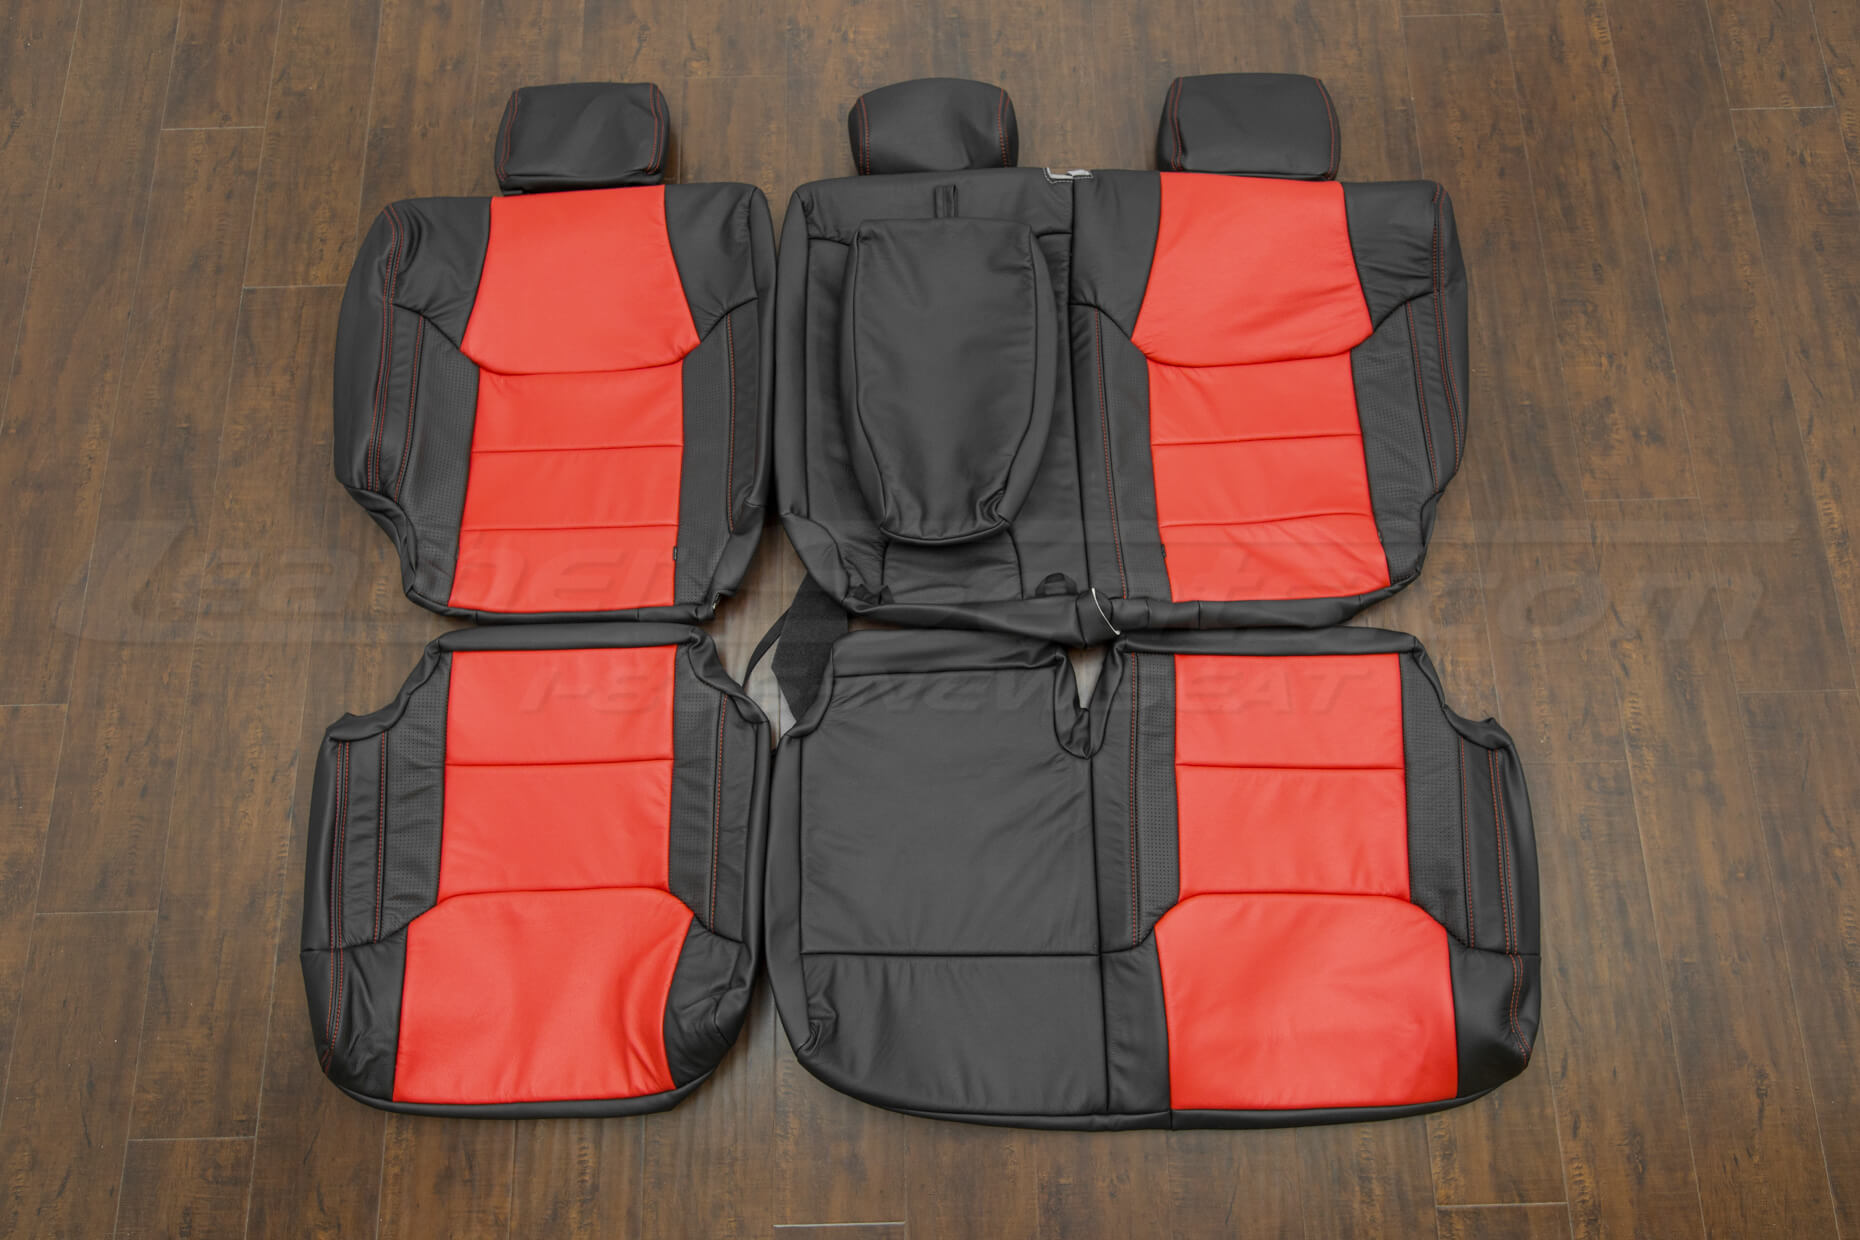 Toyota Tundra leather upholstery kit - Black/Bright Red/Piazza Red - Rear